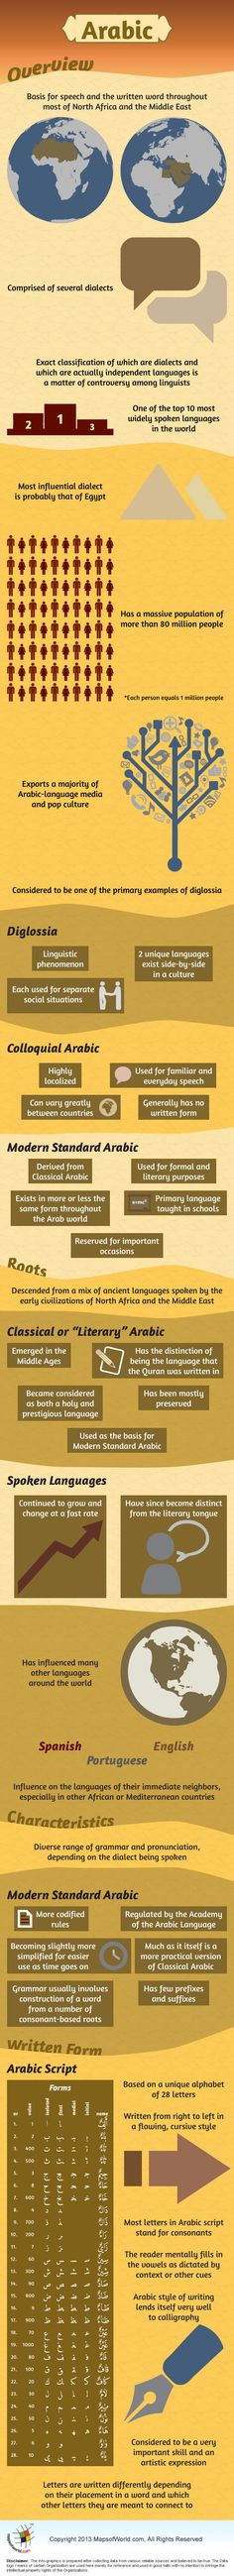 cv samples arabic english cv template word in arabic cv arabic cv format english and arabic